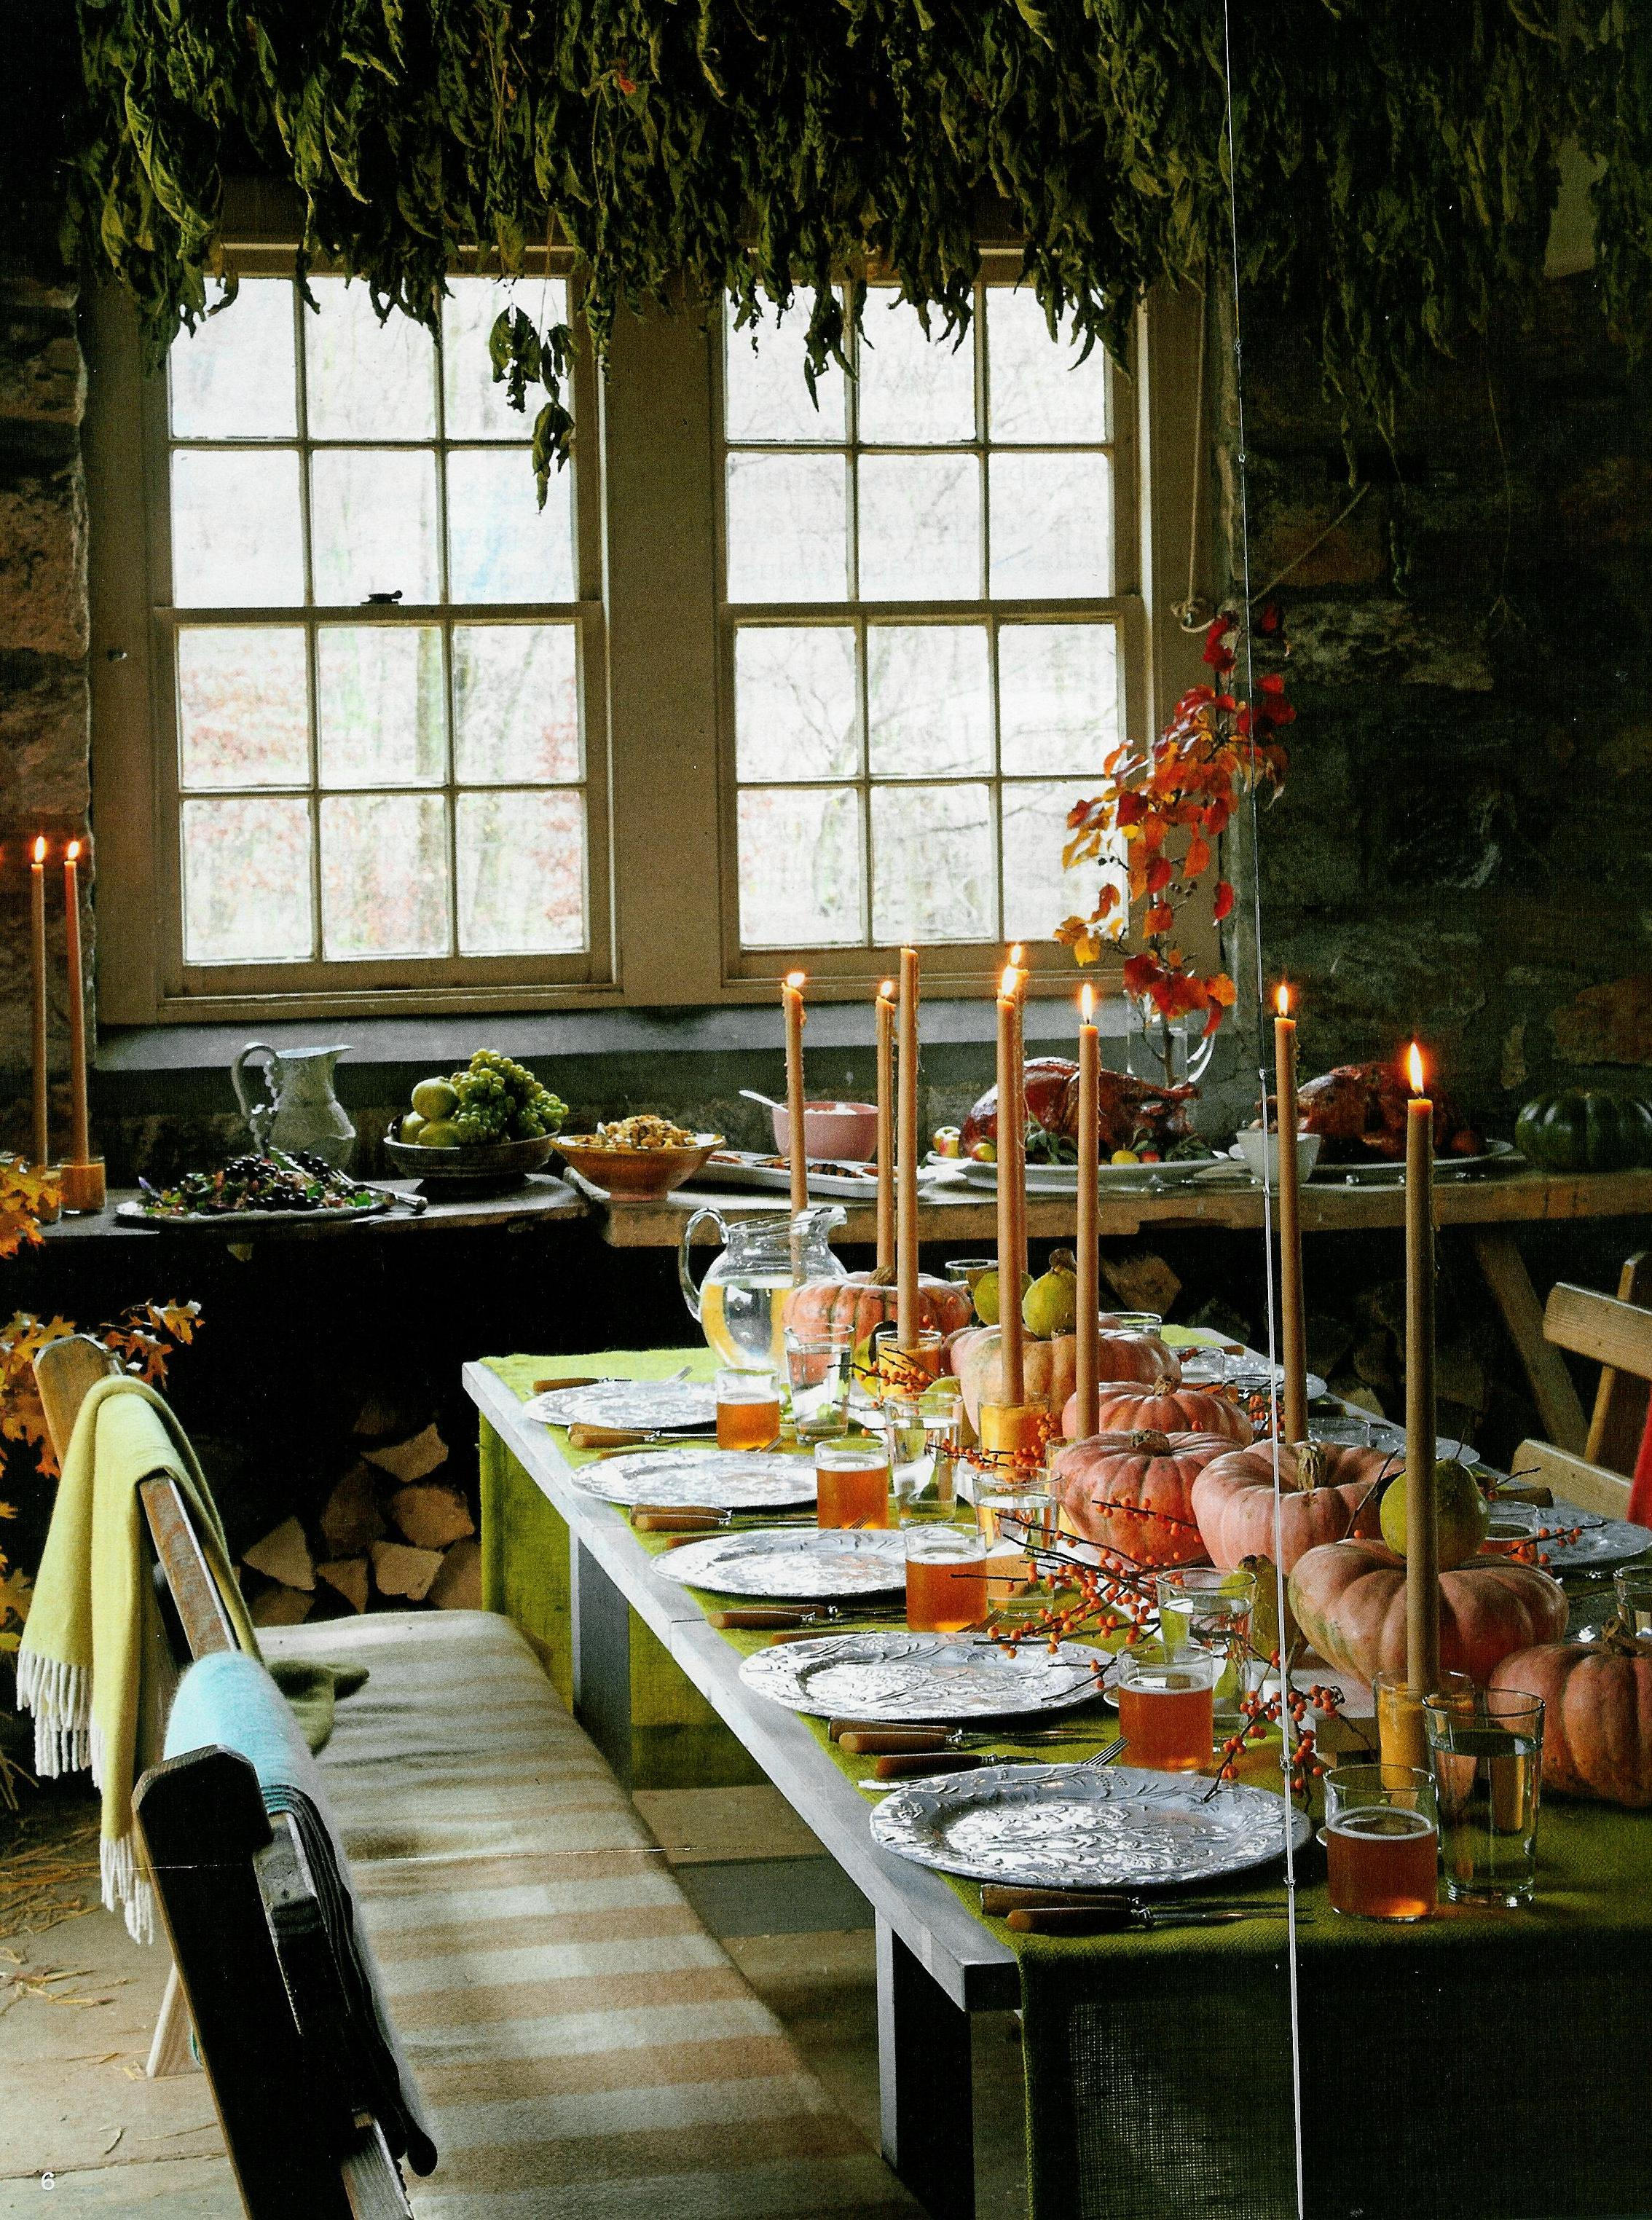 Rustic Fall Table Decorations : These Simple But Stunning Diy Table  Decorations Are Sure To Impress Your Dinner Guests.